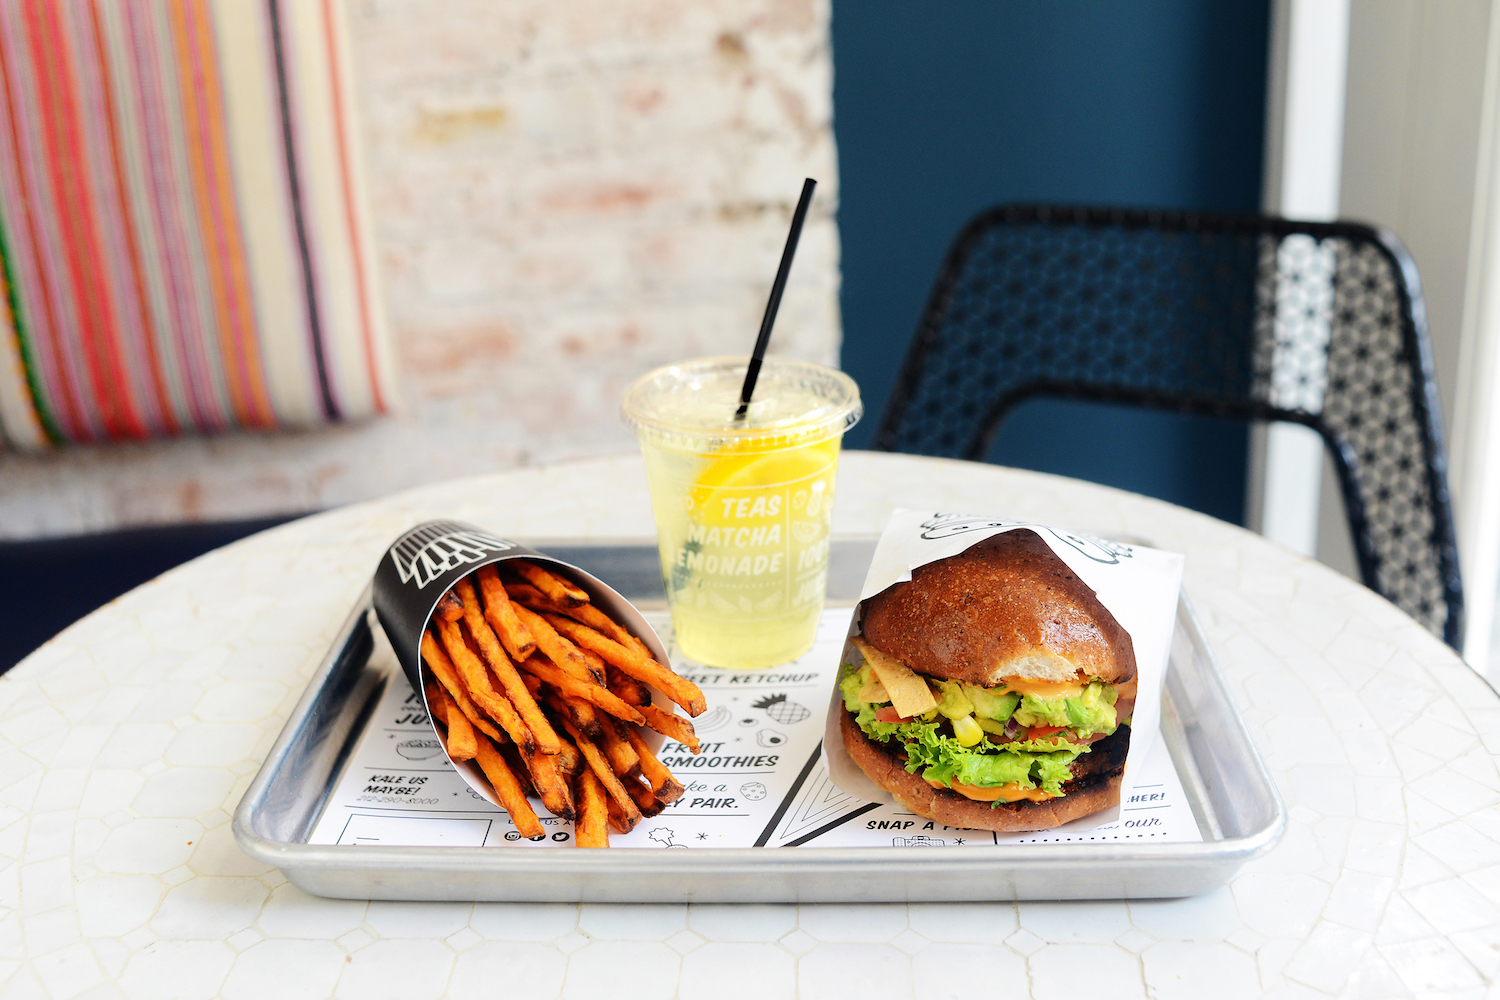 Guca Burger, Air Bakes Sweet Potato Fries, and a Seasonal Lemonade.